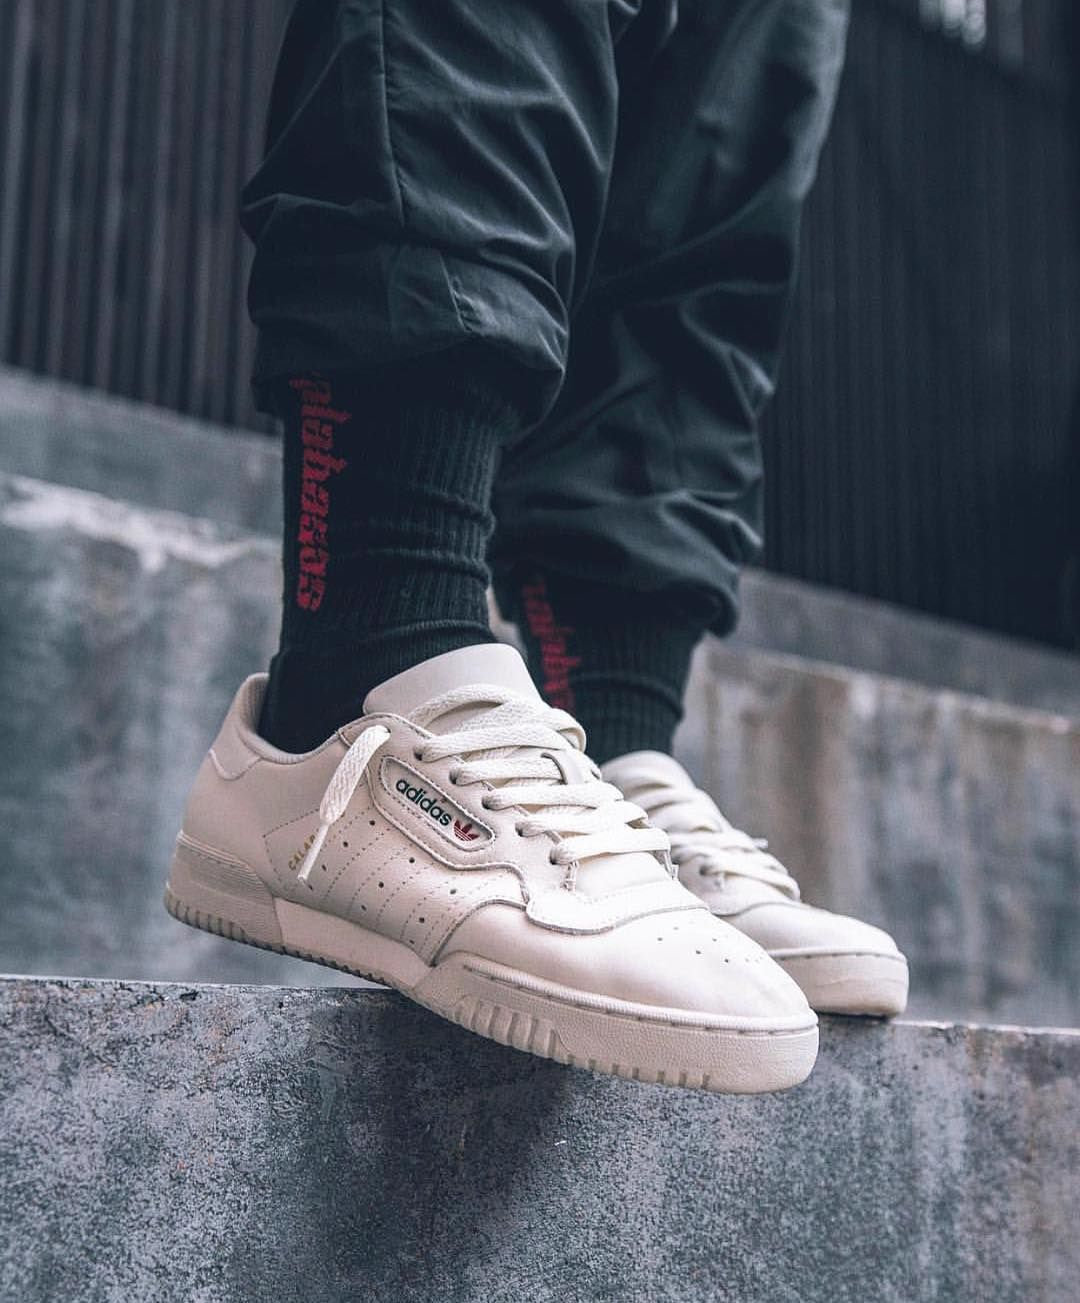 El Yeezy Calabasas Powerphase en color blanco. Fotografía: Sole Suplier